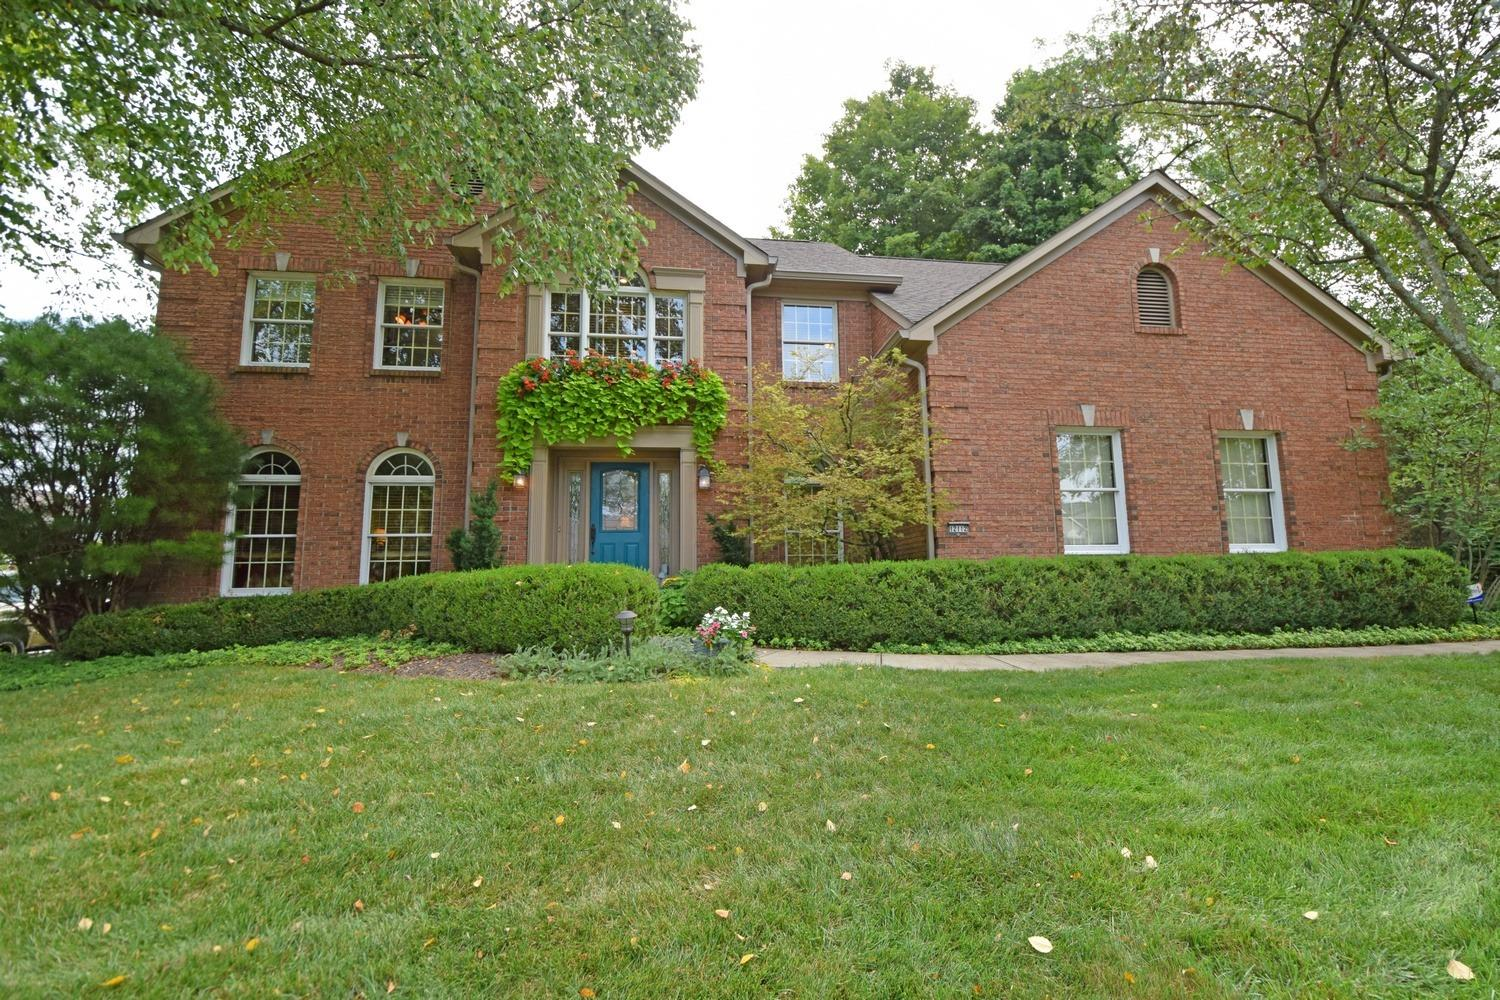 Property for sale at 12112 Coyote Court, Sycamore Twp,  Ohio 45241